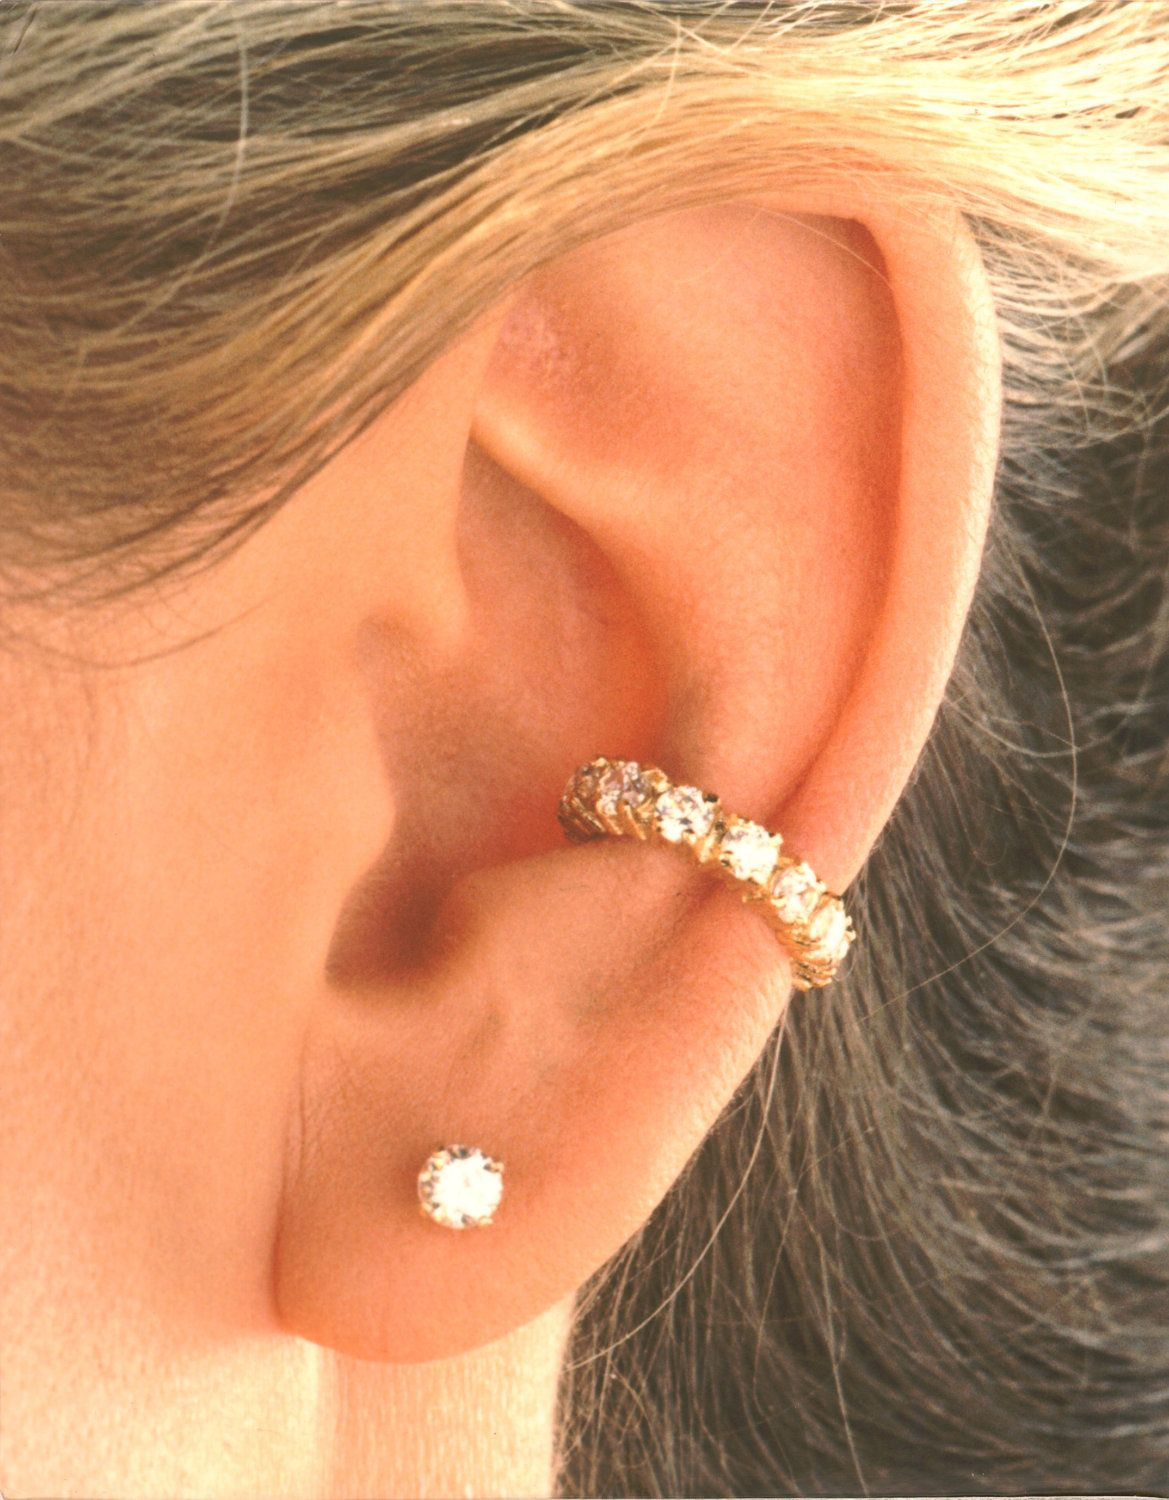 Photo of Cubic Zirconia 'Tennis Band'  Ear Cuff  in Sterling Silver or Gold Vermeil   #57-CZ